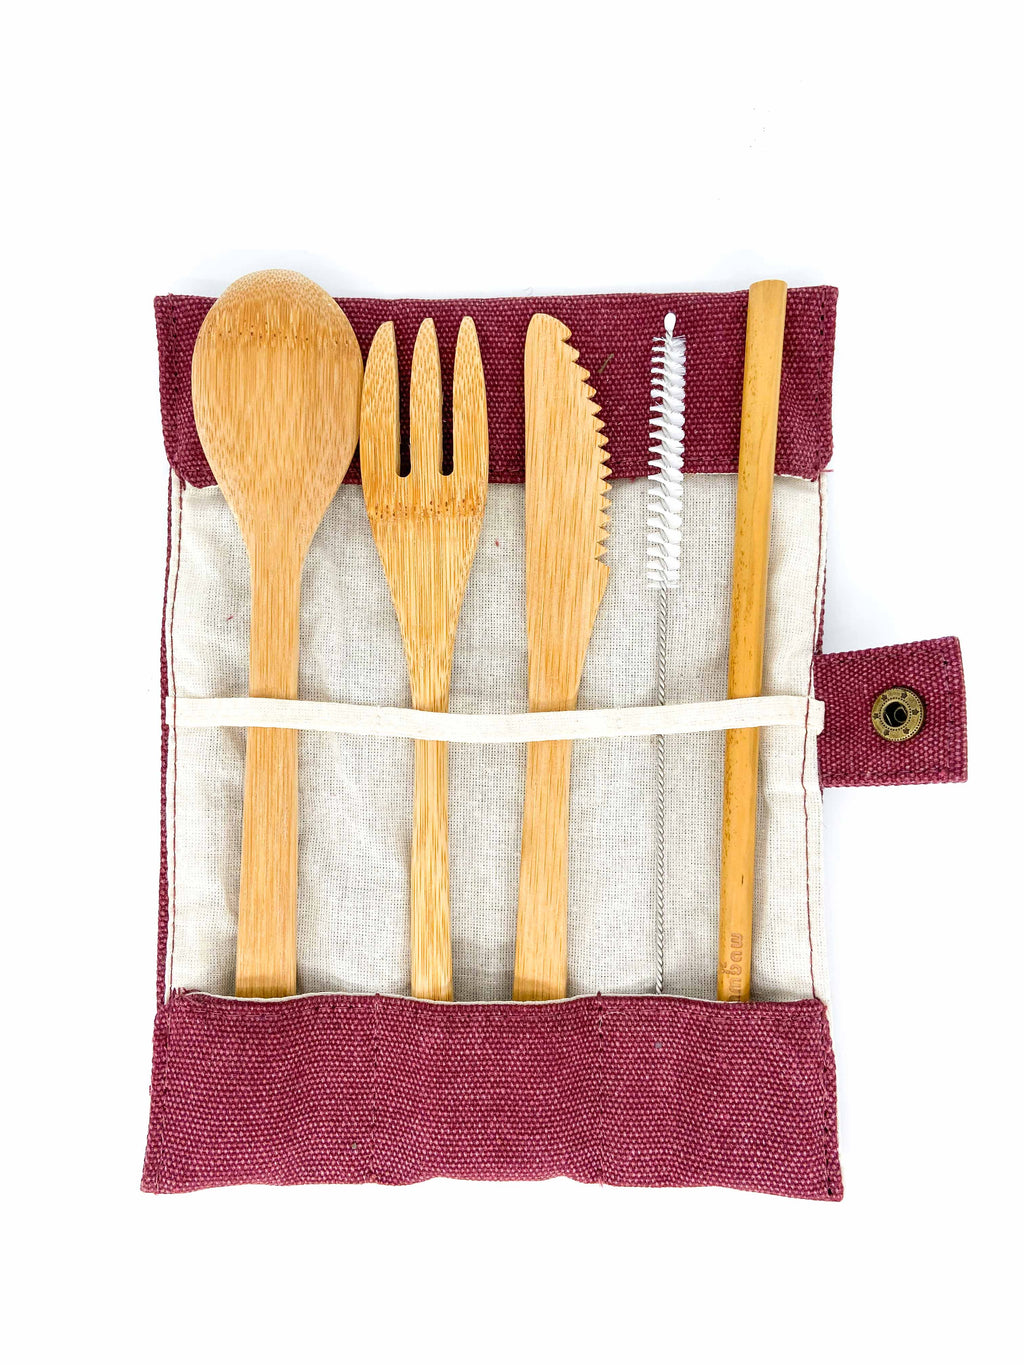 Bambaw Reusable Cutlery Set (Berry) - MIMI+MARTHA